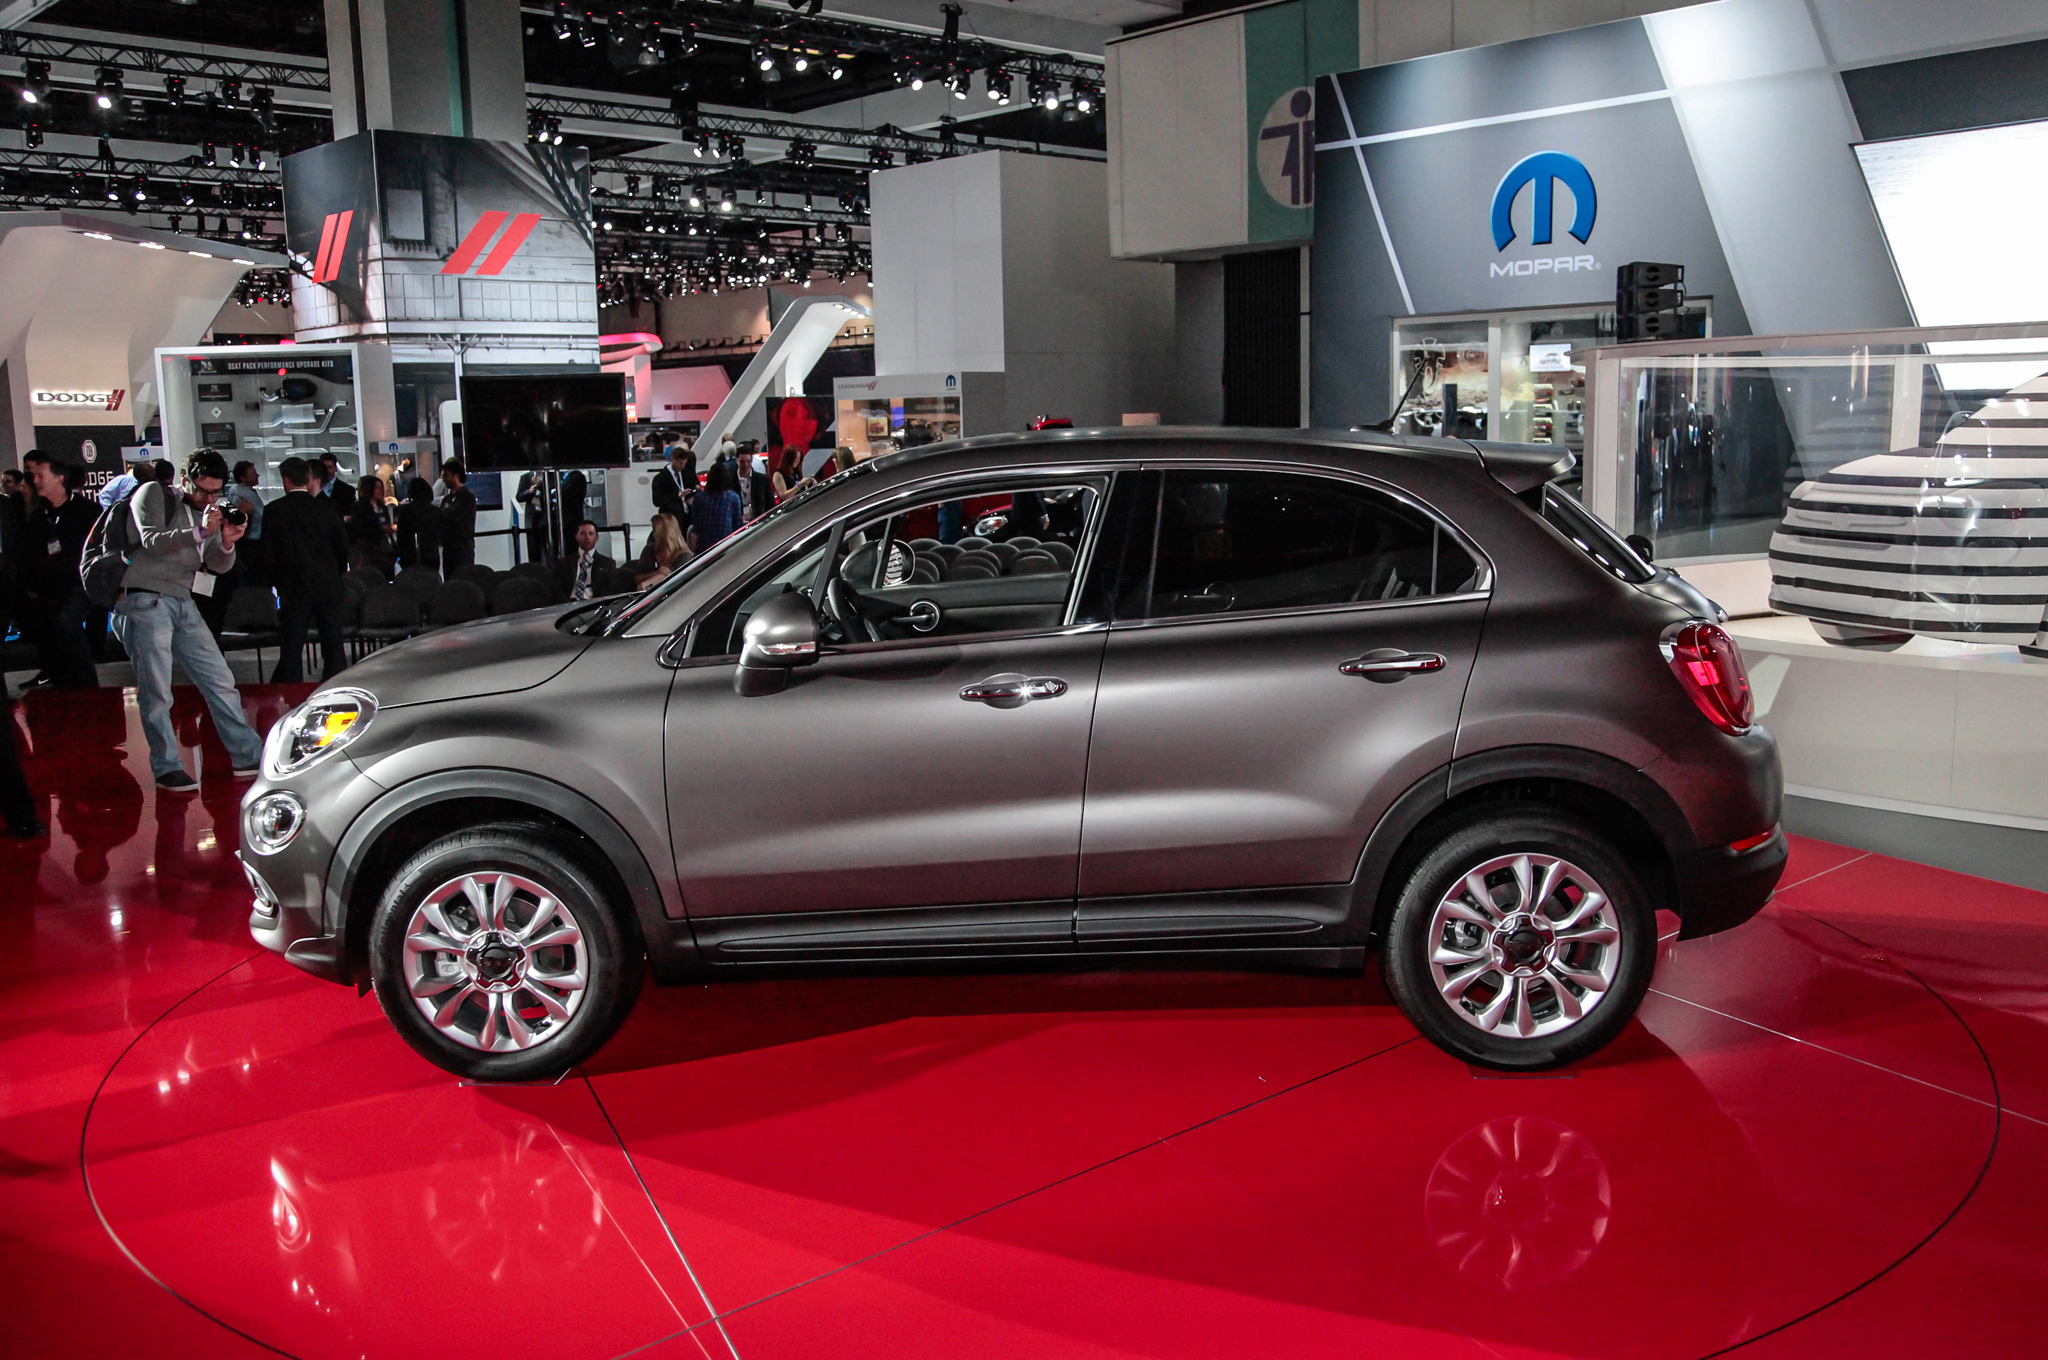 2016 Fiat 500x Side View In Auto Show (Photo 66 of 66)